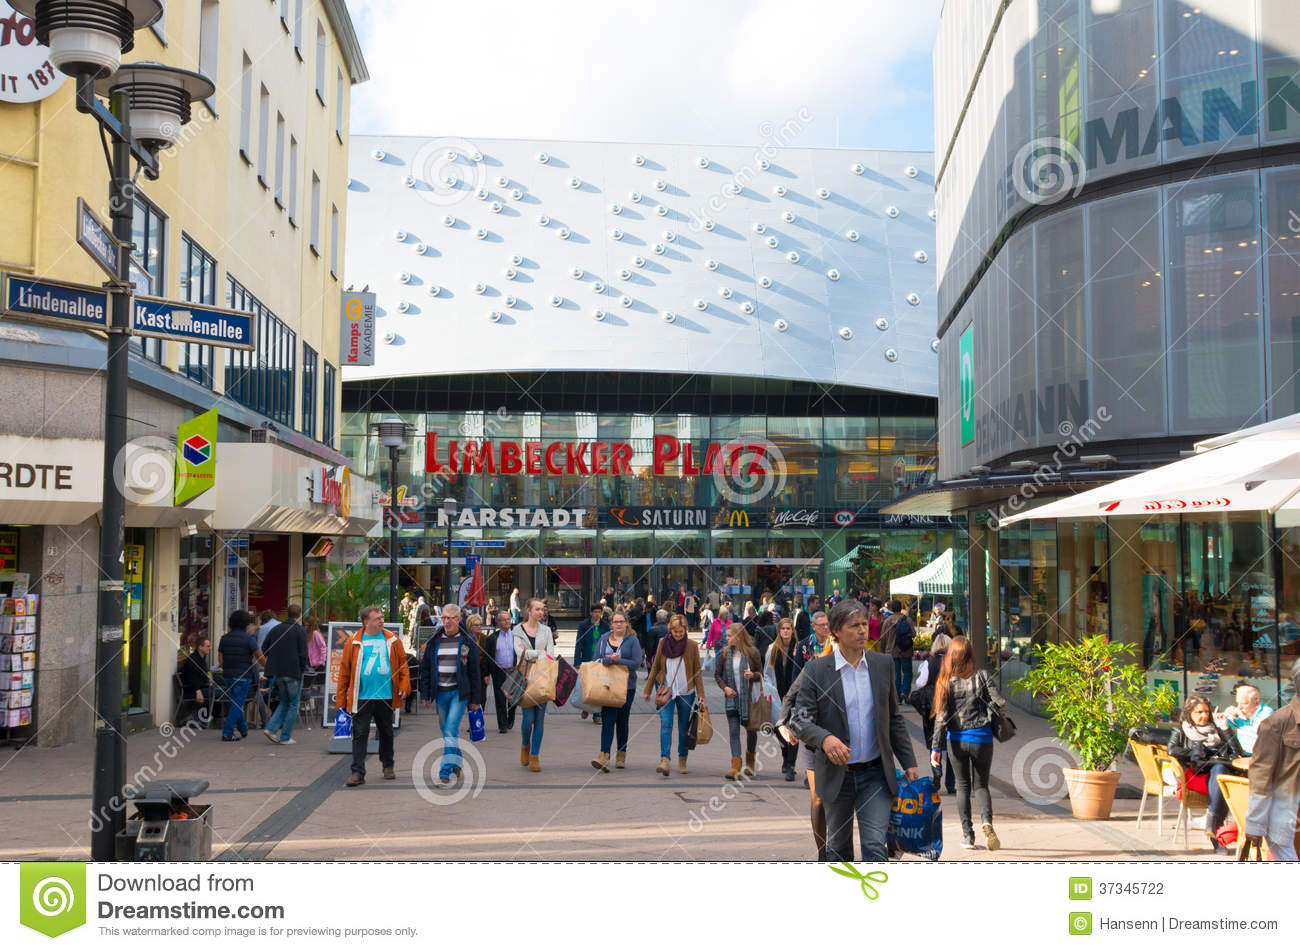 Shoppinggalleria i Essen, Tyskland